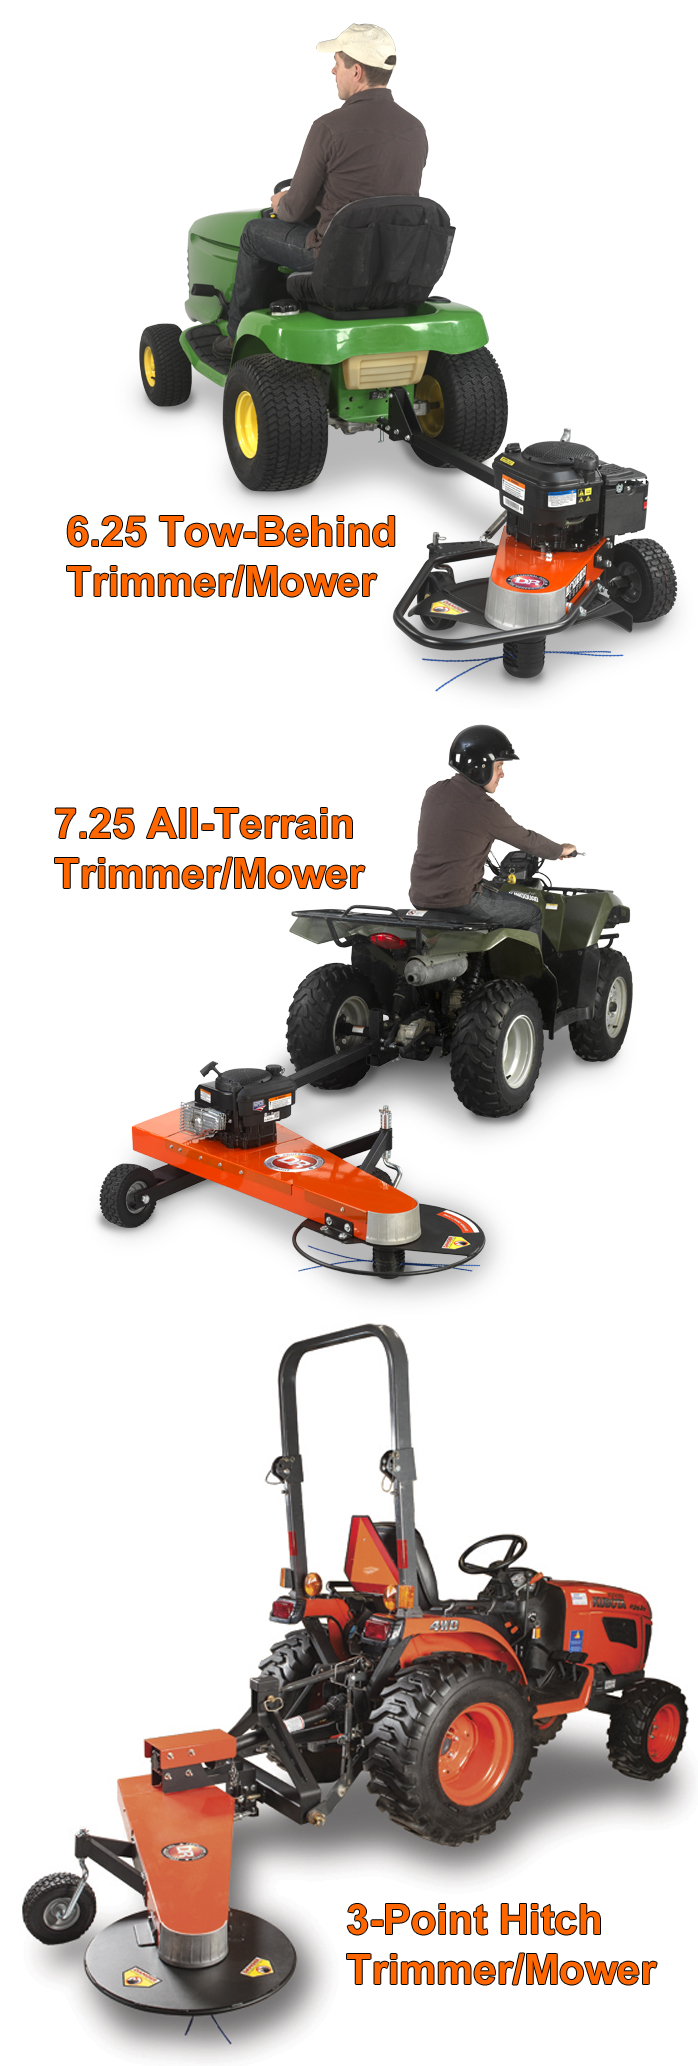 Which Tow-Behind String Trimmer is Best for Me? - DR's